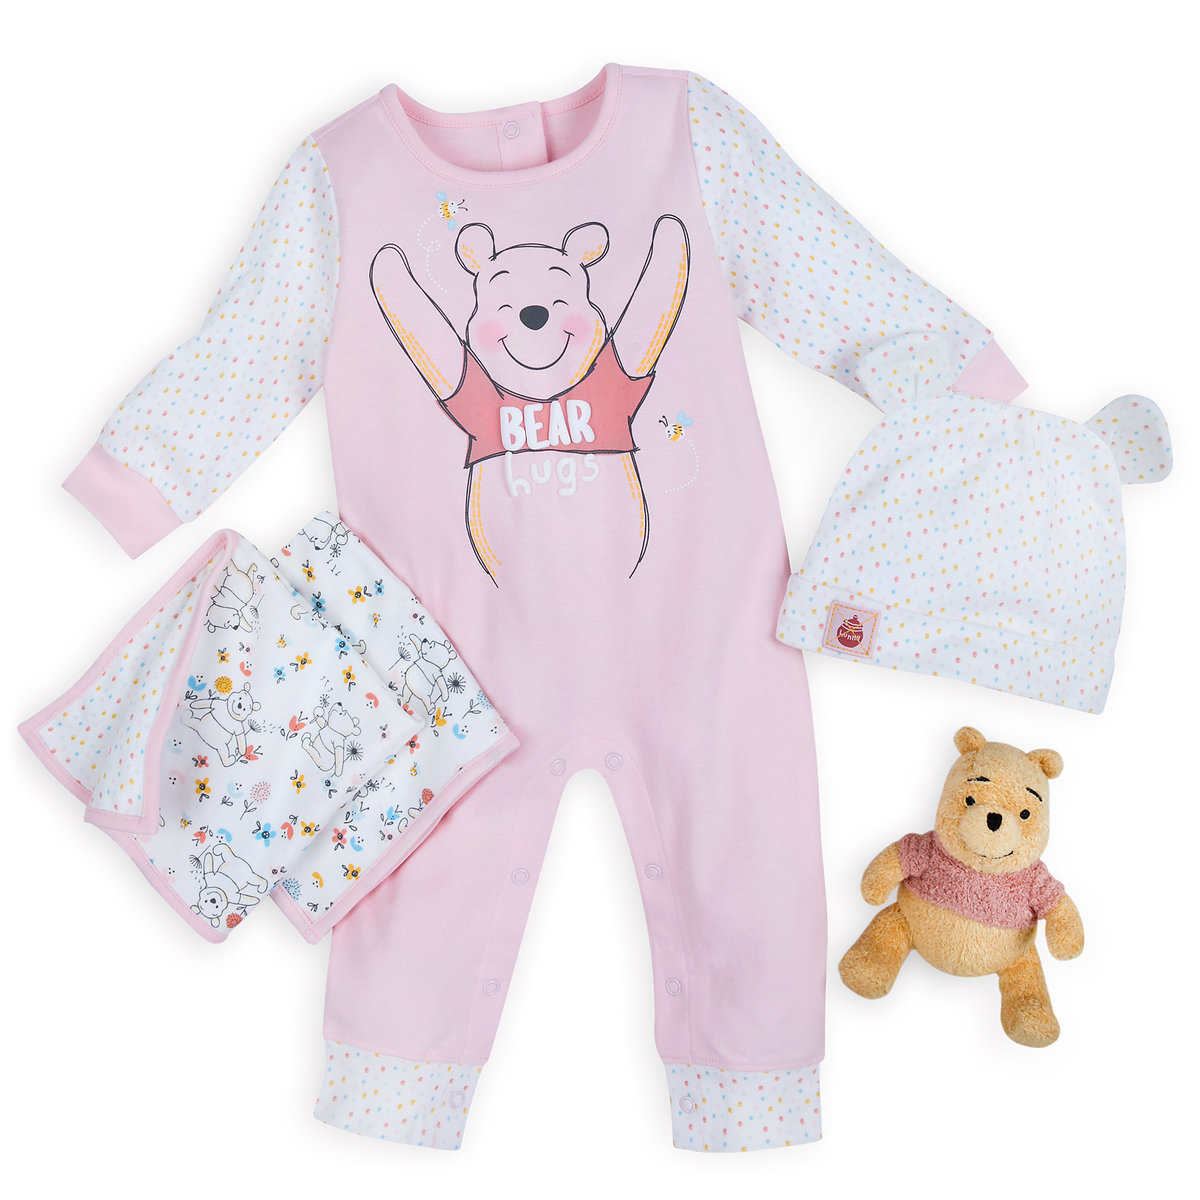 Winnie The Pooh Gift Set For Baby Pink Shopdisney